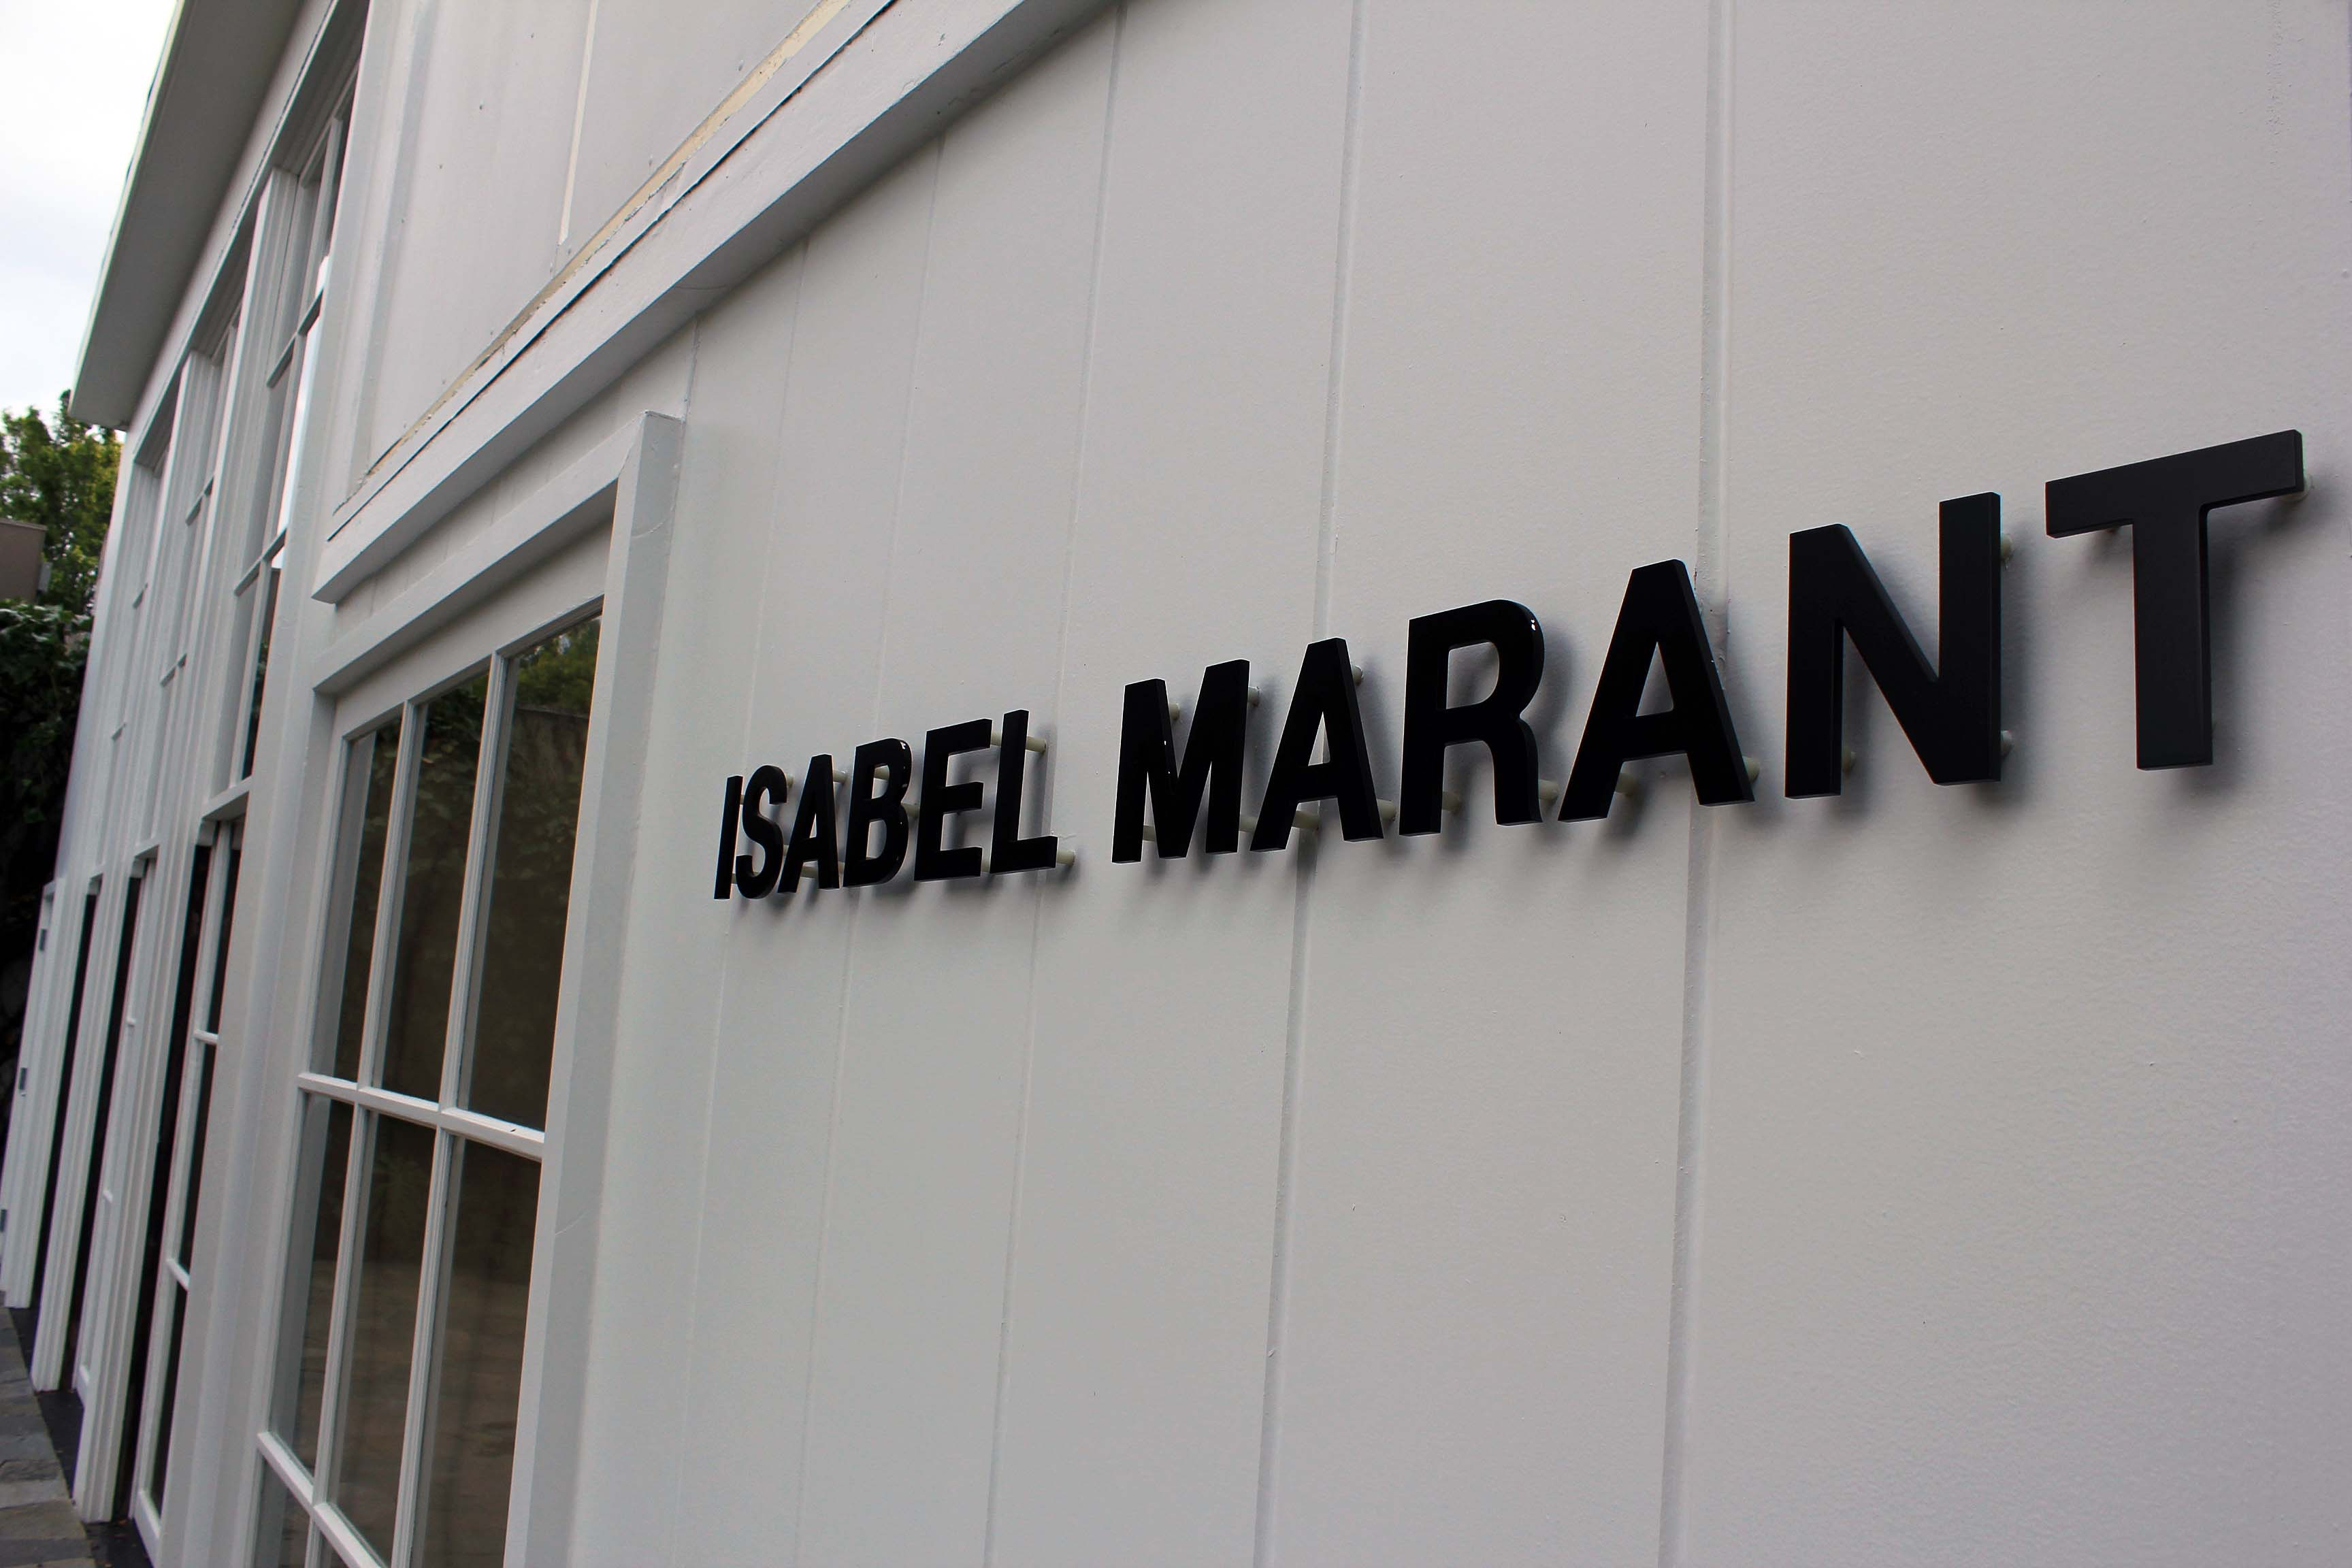 isabel marant opens in weho